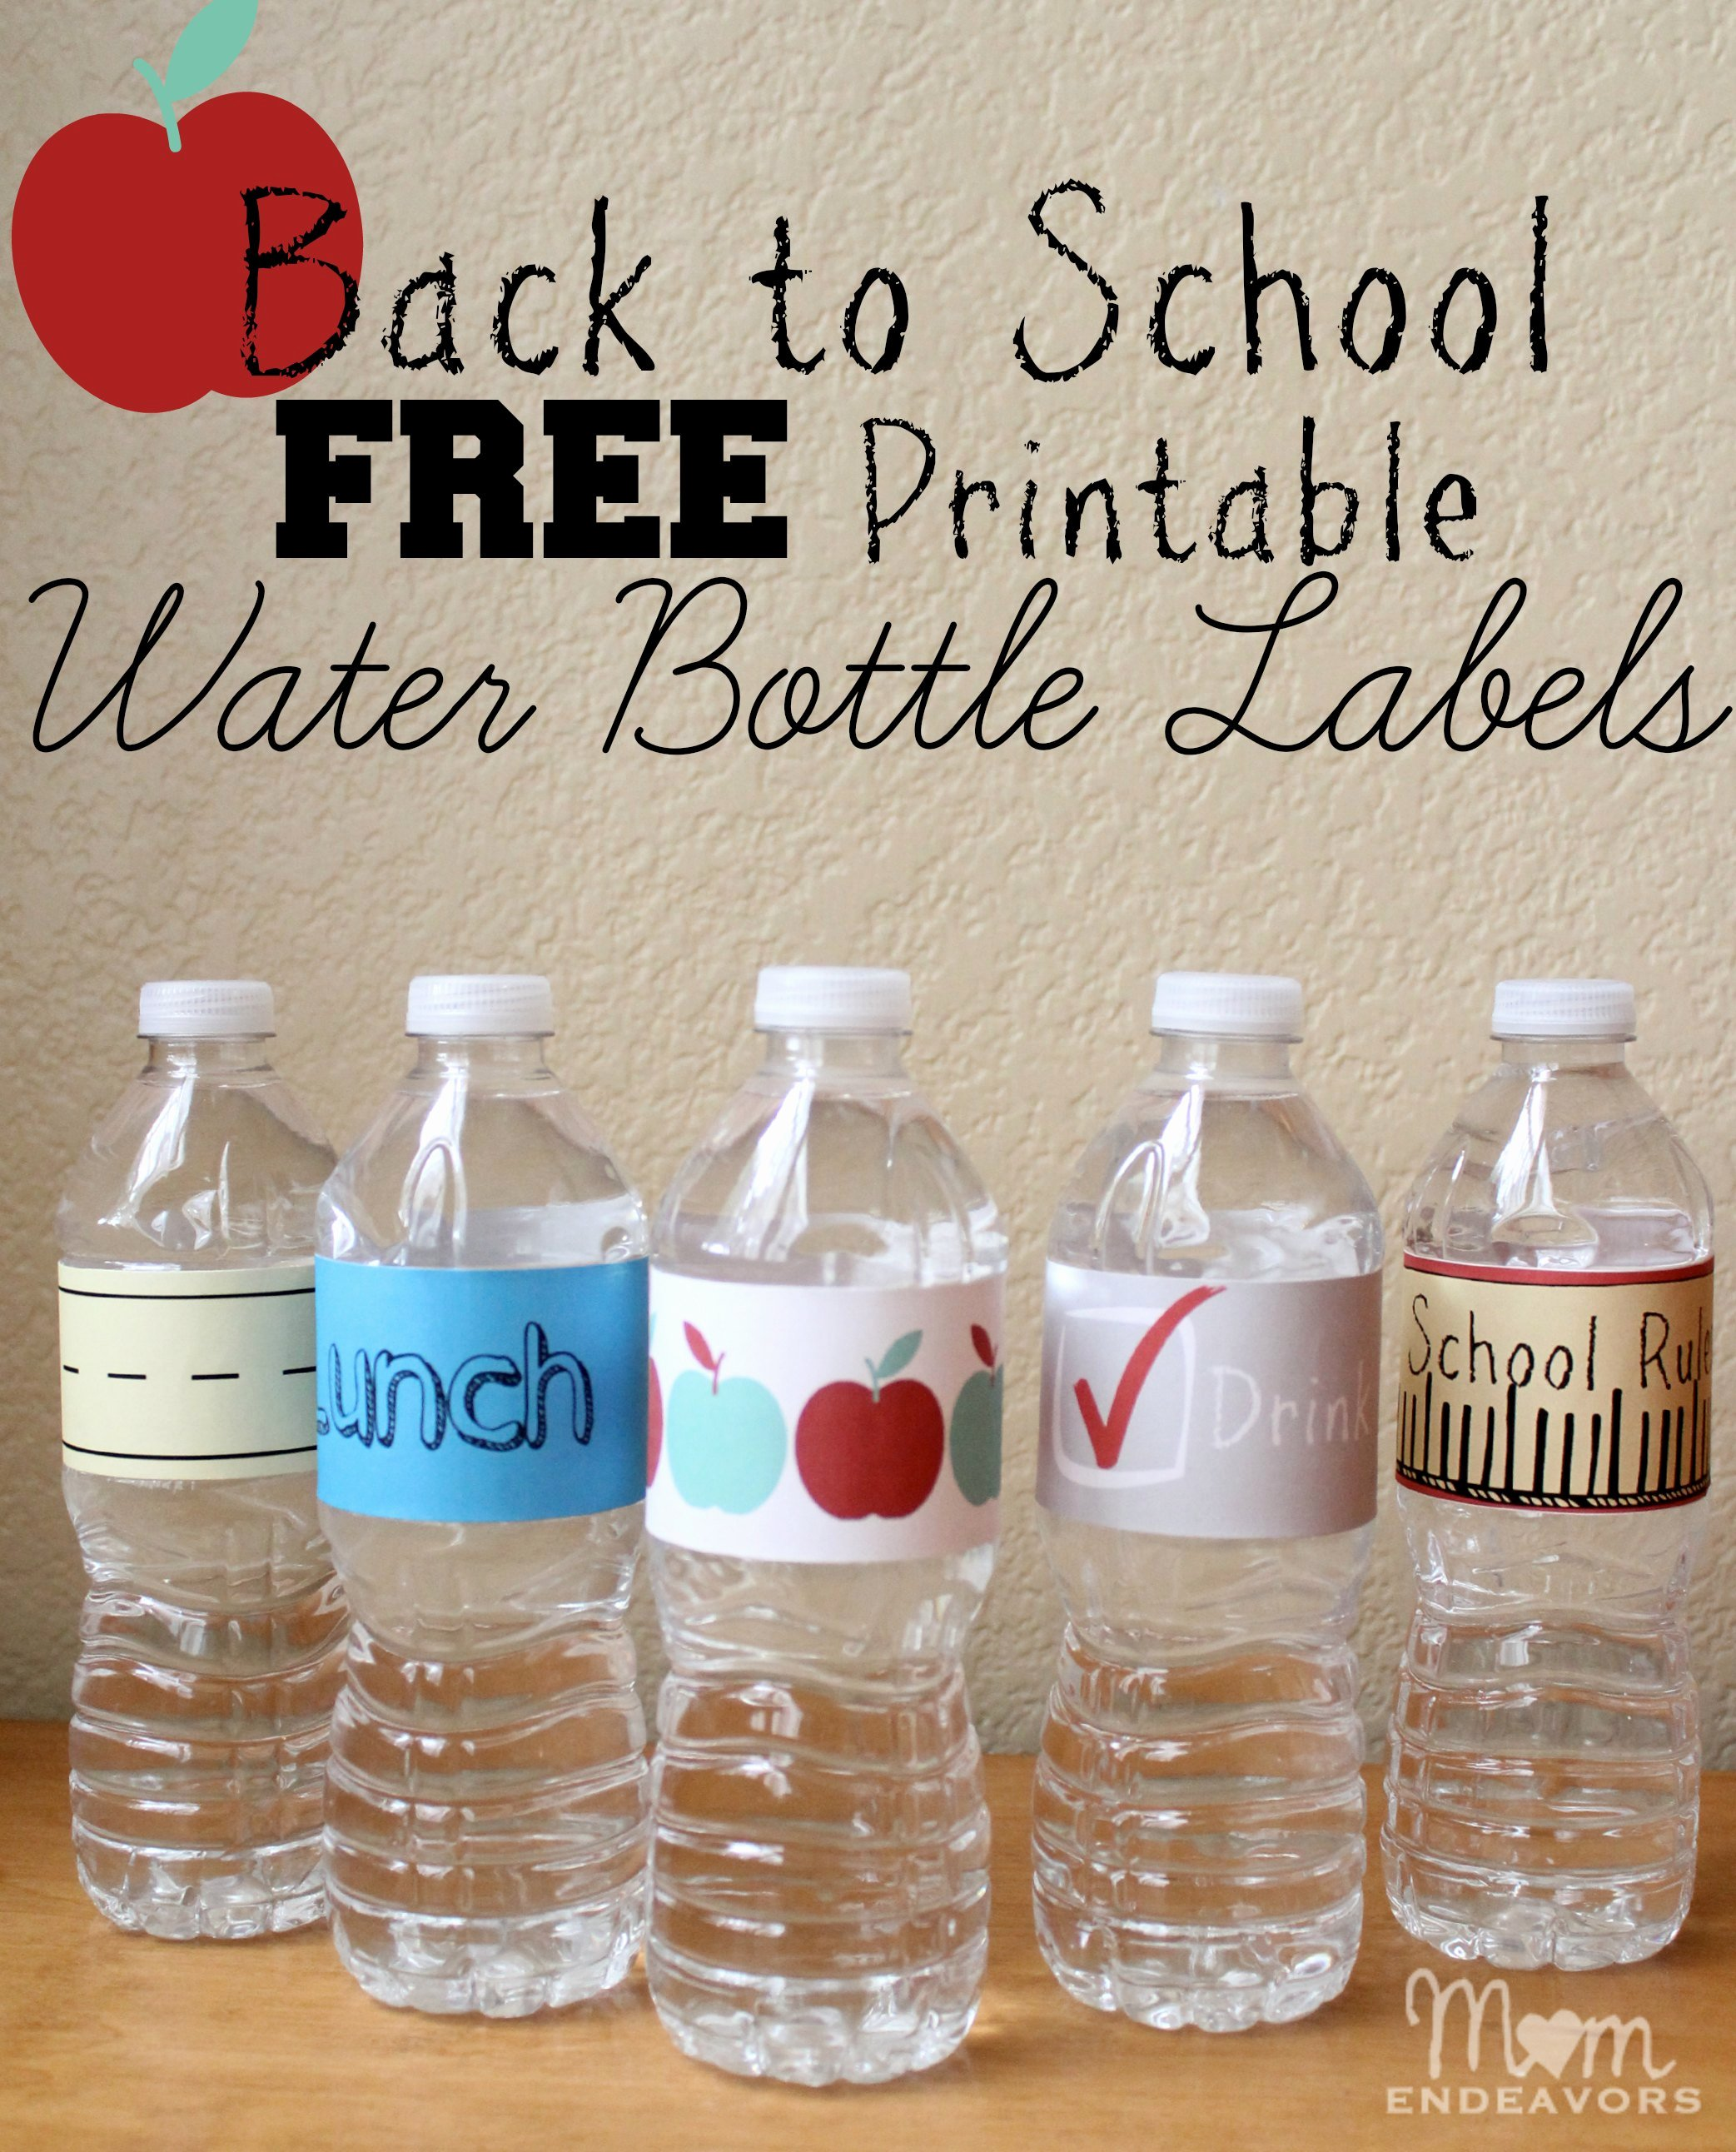 Printable Water Bottle Labels Luxury Convenient & Fun Drinks for Back to School Lunches with